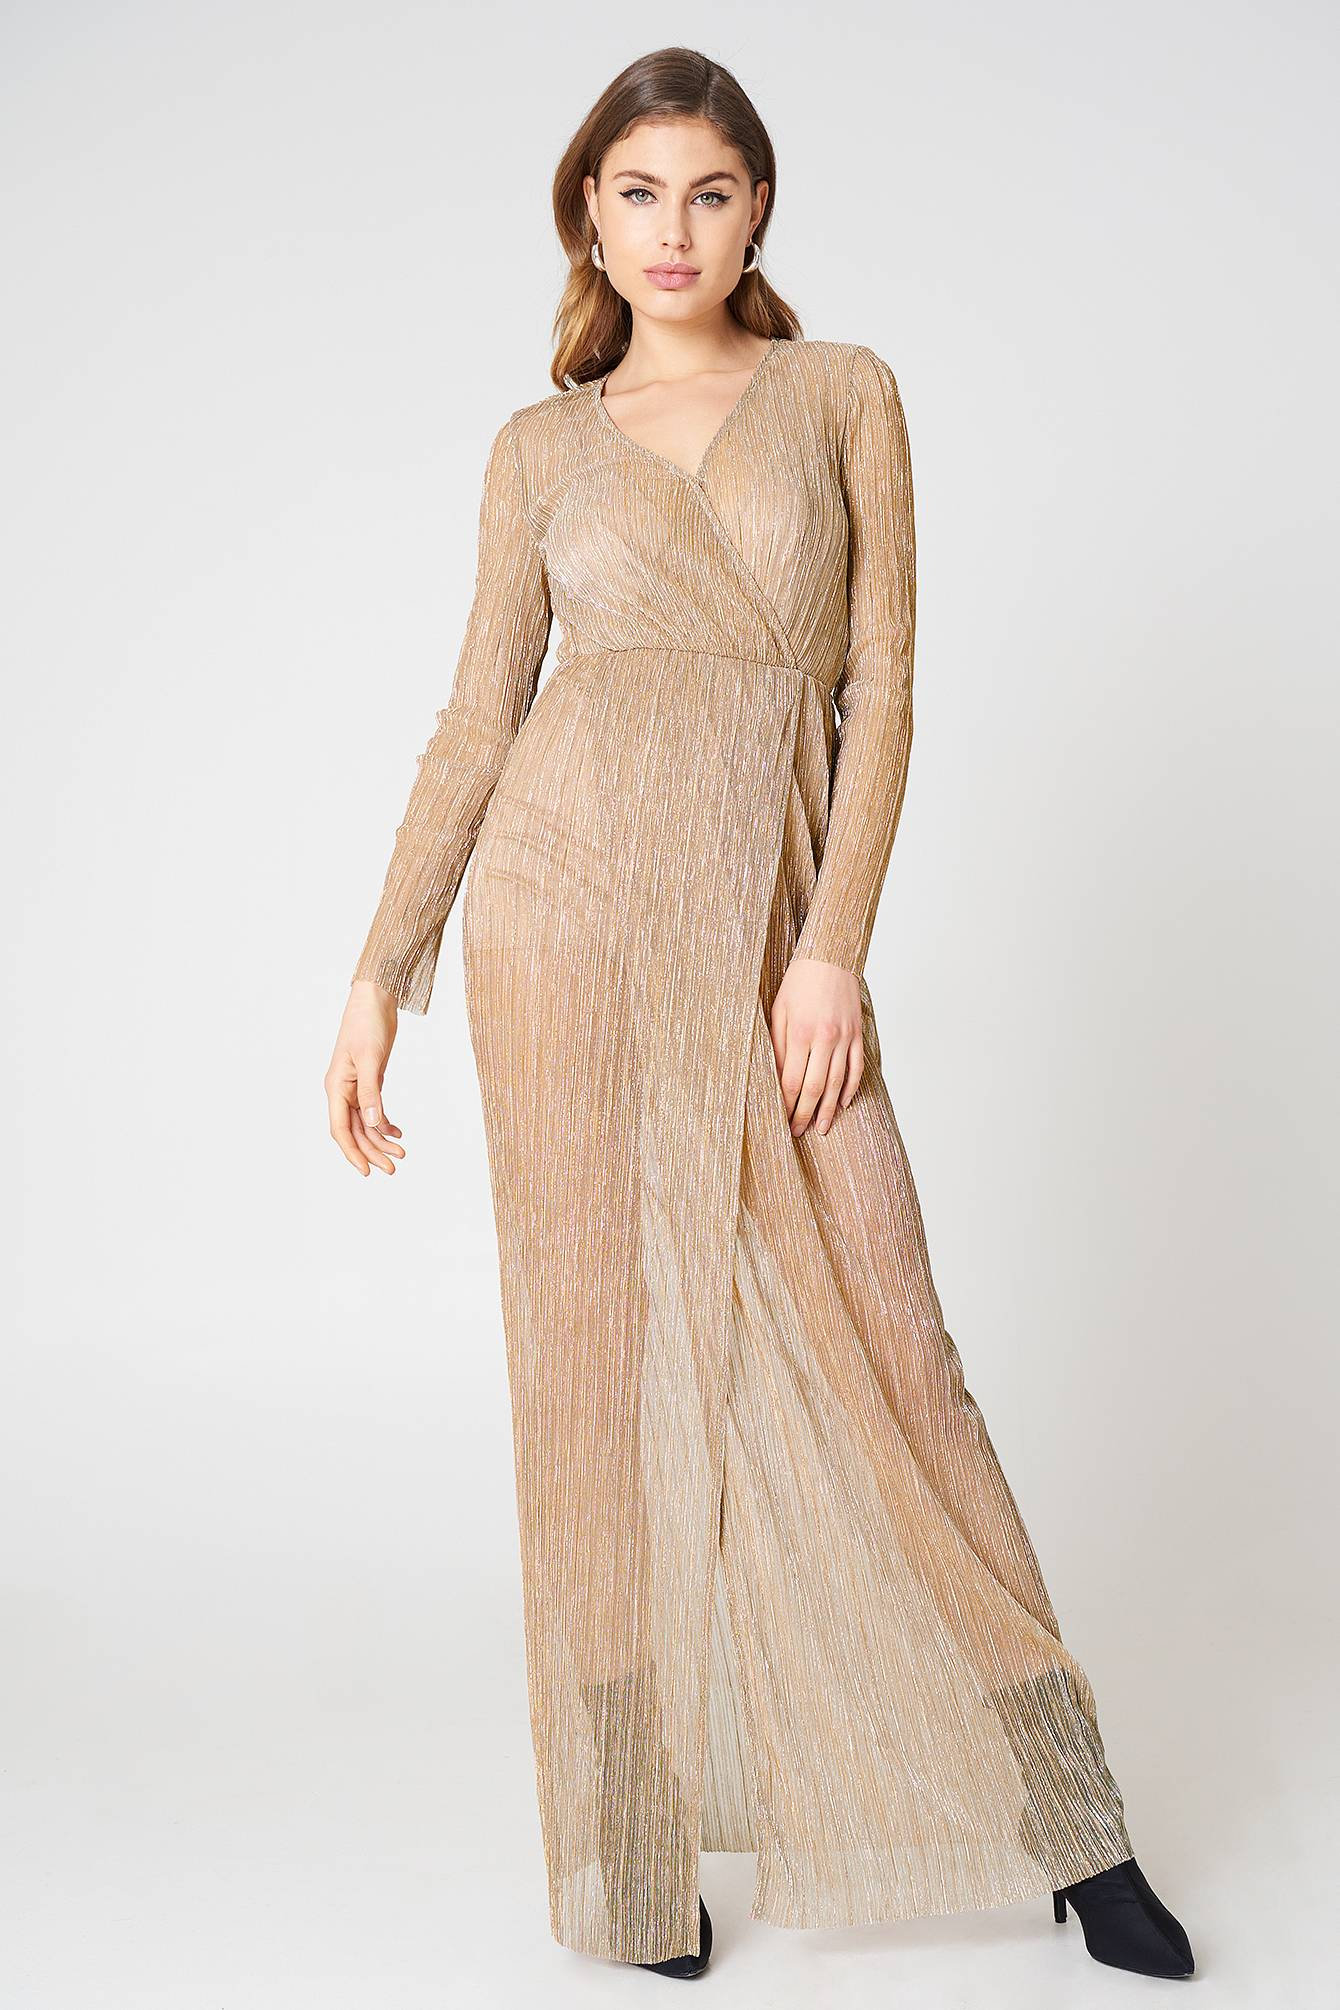 The Jetset Diaries Avalon Maxi Dress - Pink,Nude